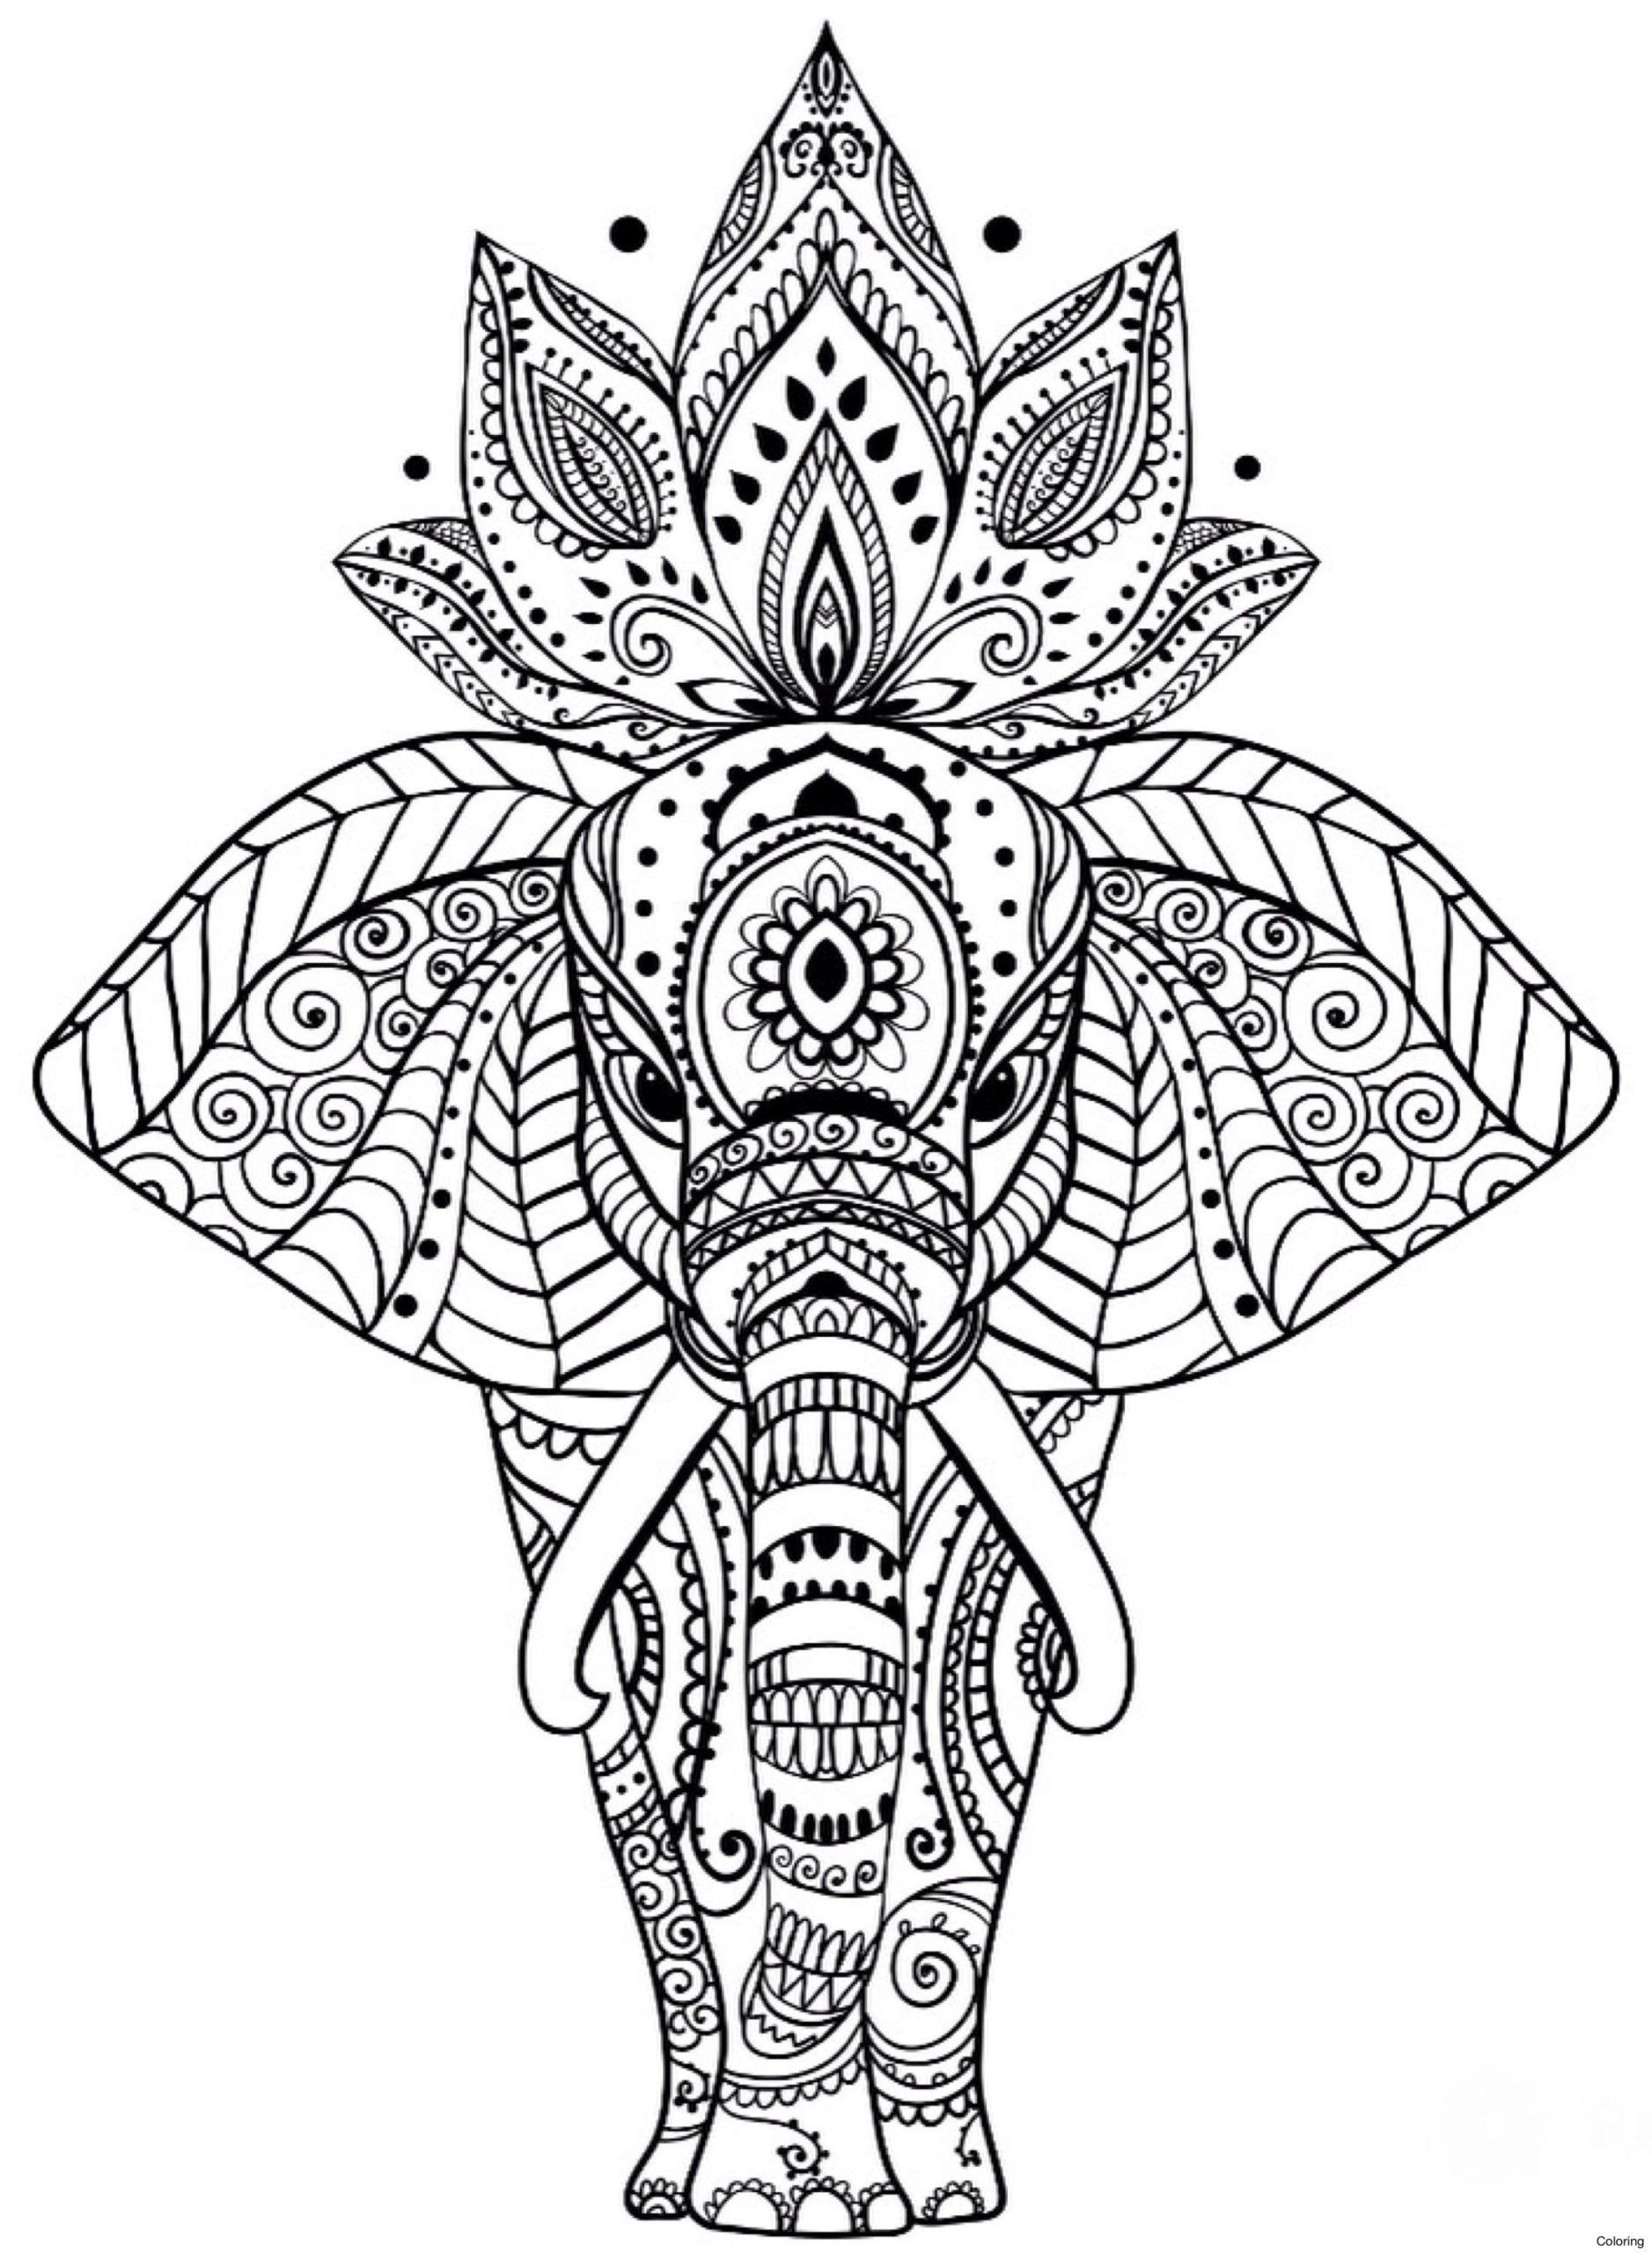 Mandala Online Coloring Pages Coloring Pages Coloring Sheets Kids Paint Line Princess Mandala Coloring Pages Elephant Coloring Page Mandala Coloring